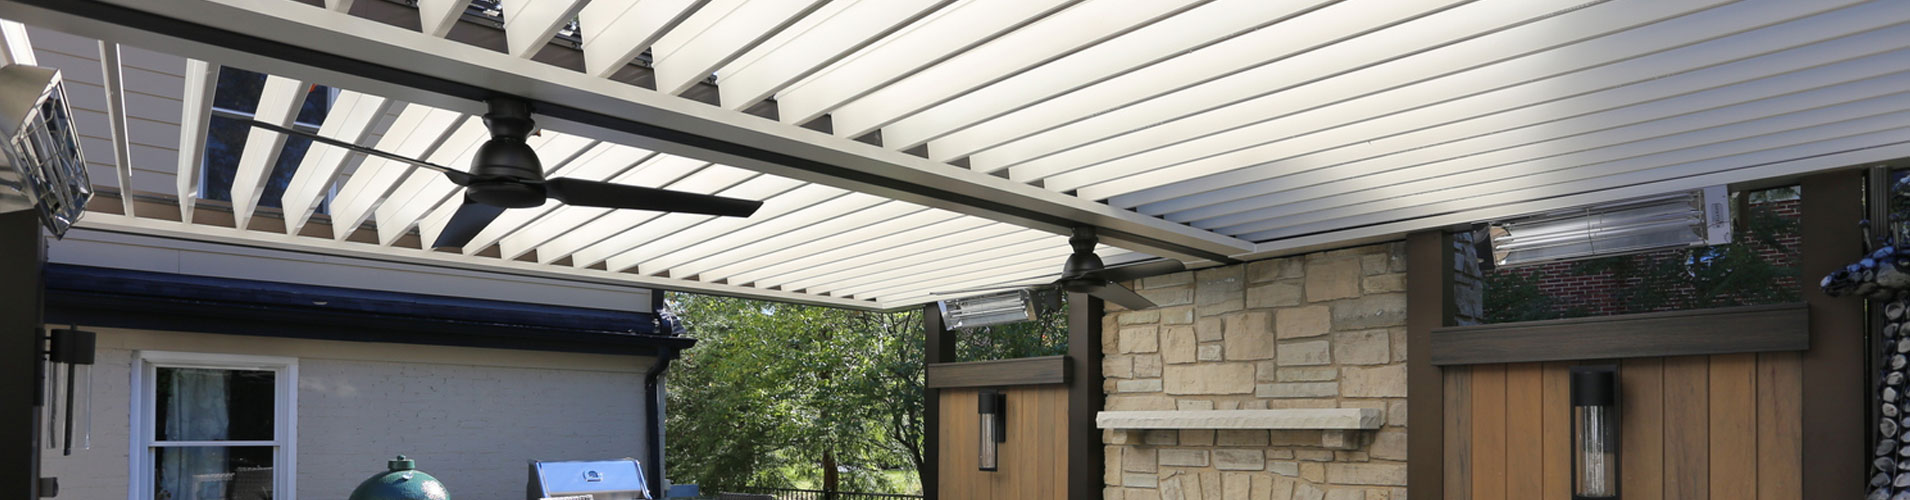 Louvered Roof for your Dallas Patio